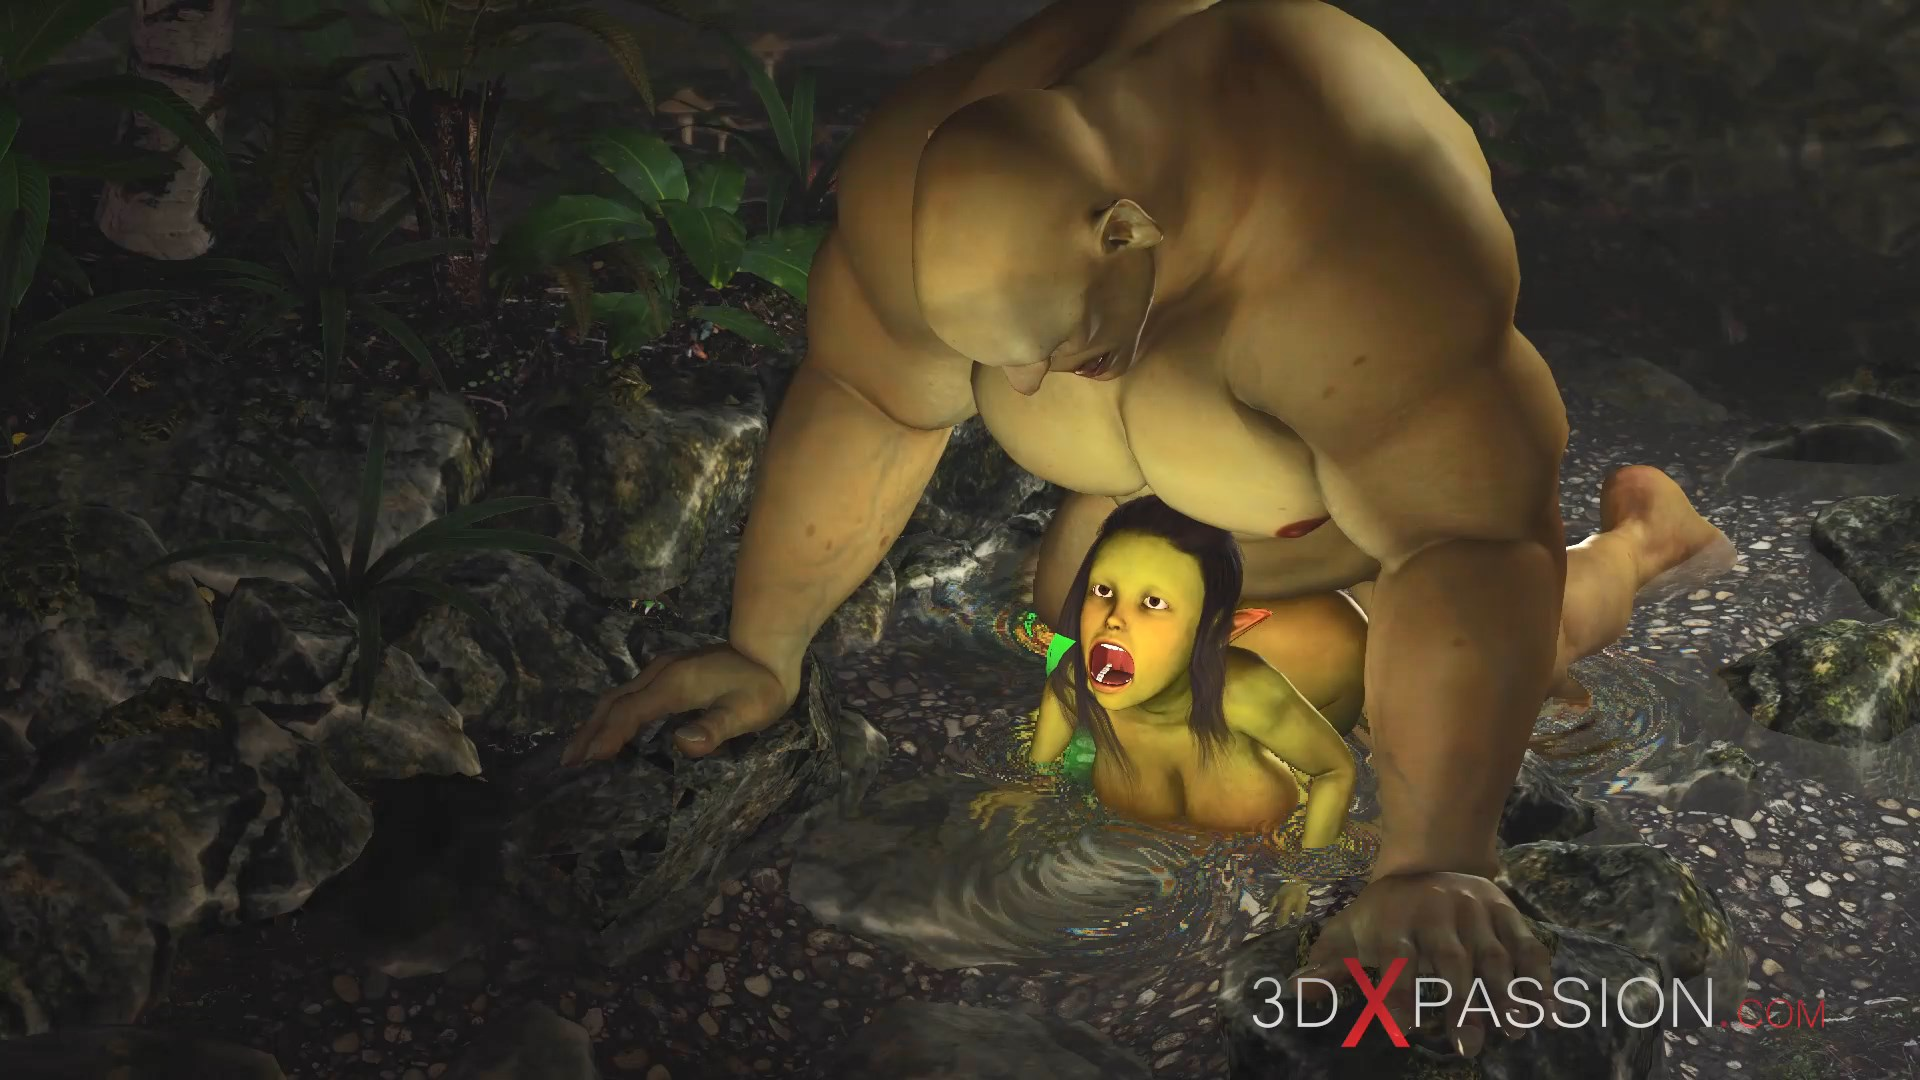 Ogre fuck doggystyle horny female goblin enchanted forest